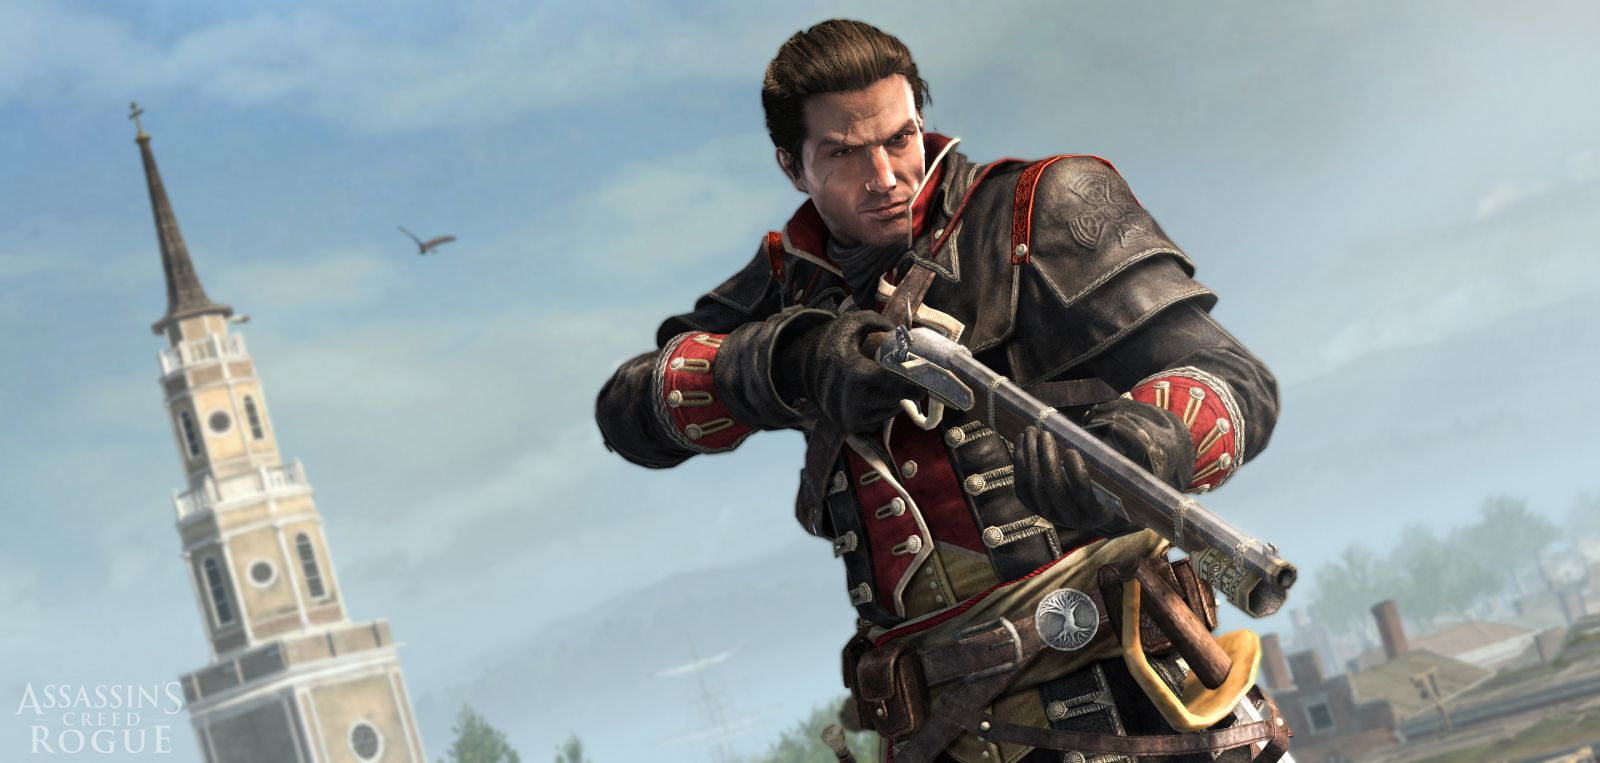 assassins creed rogue screenshot 1